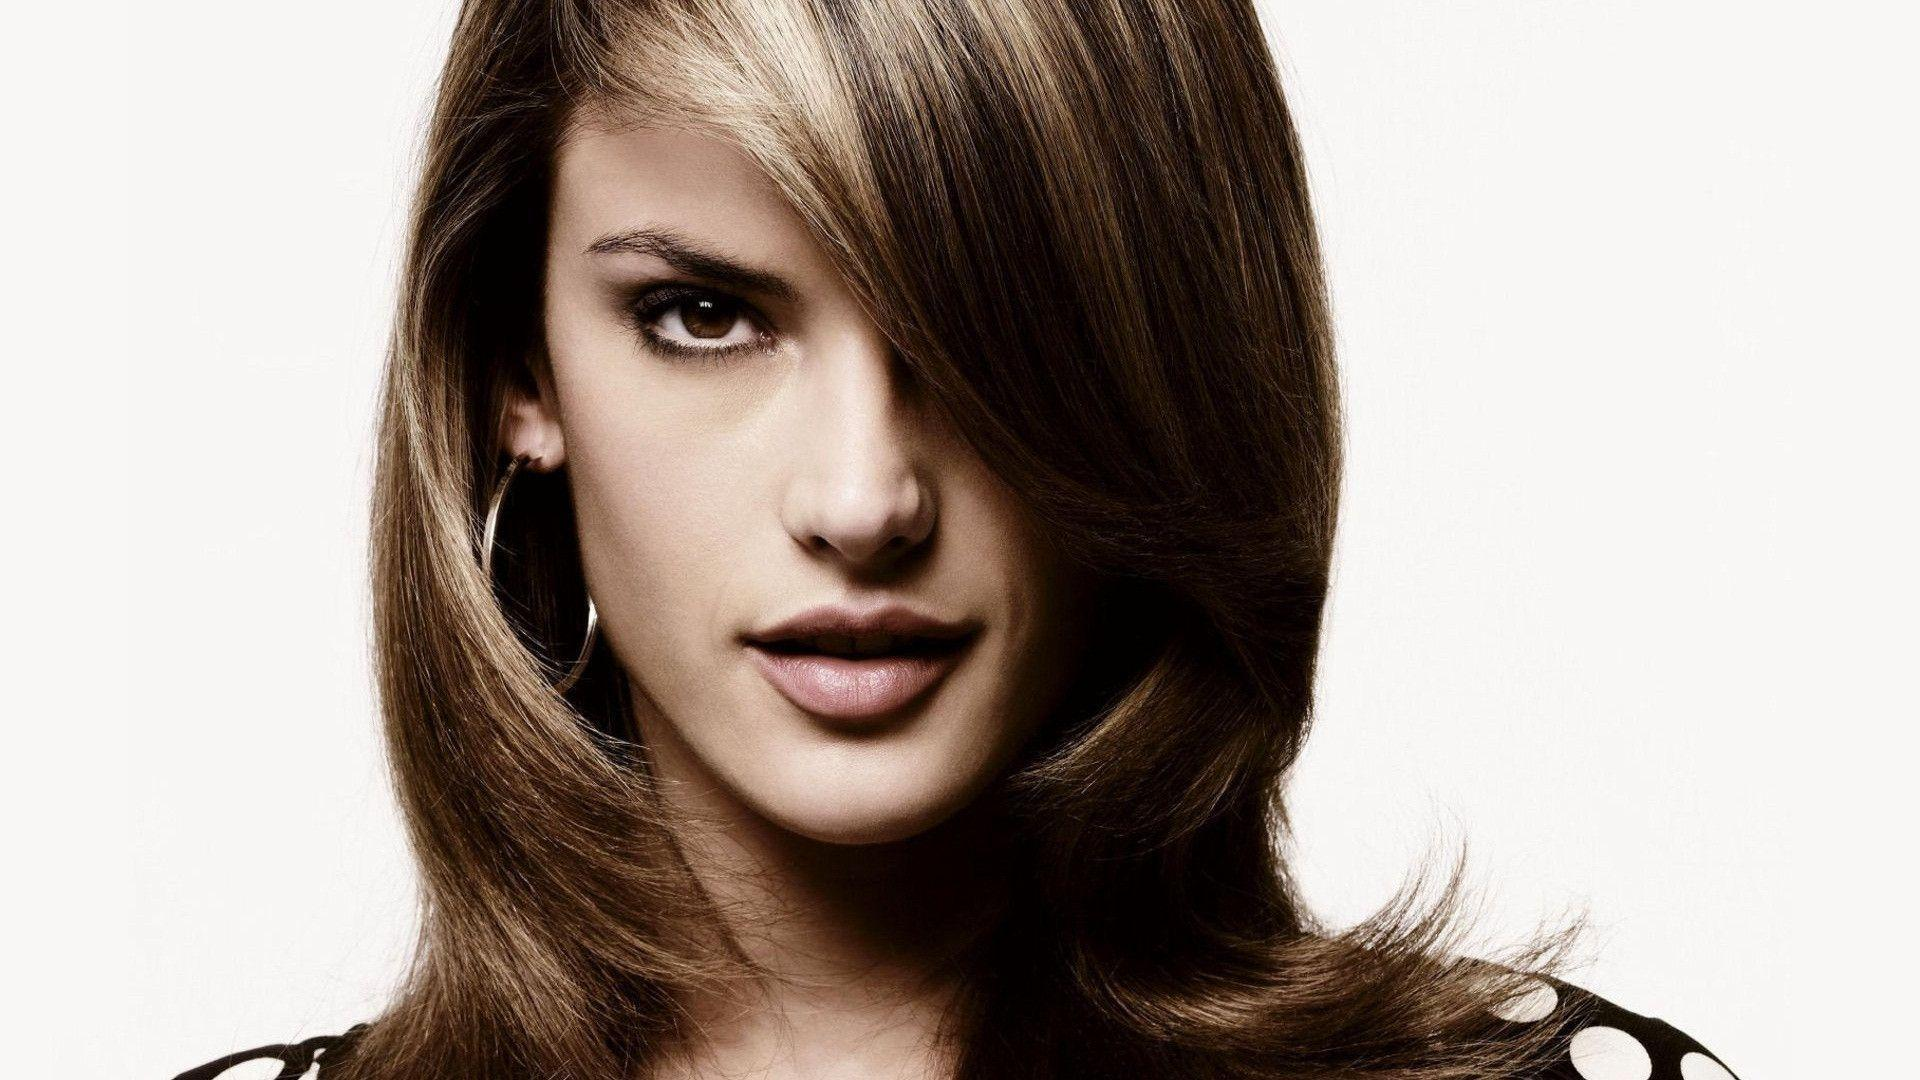 Hair Style Definition: Beautiful Ladies Wallpapers